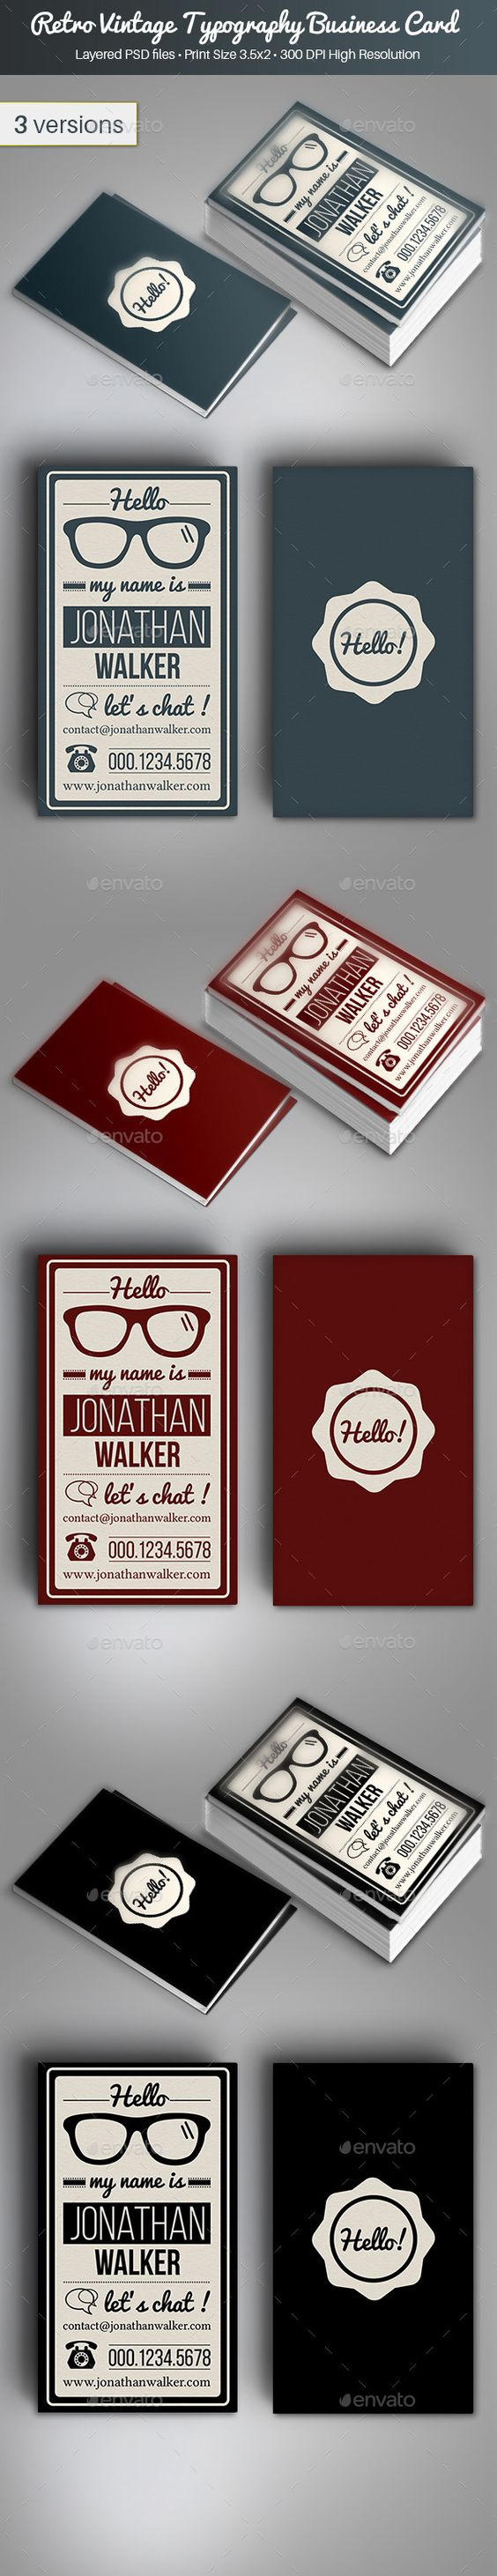 Retro Vintage Typography Business Card Template PSD | Buy and Download: graphicriver.net/... Free business card design http://www.plasticcardonline.com/